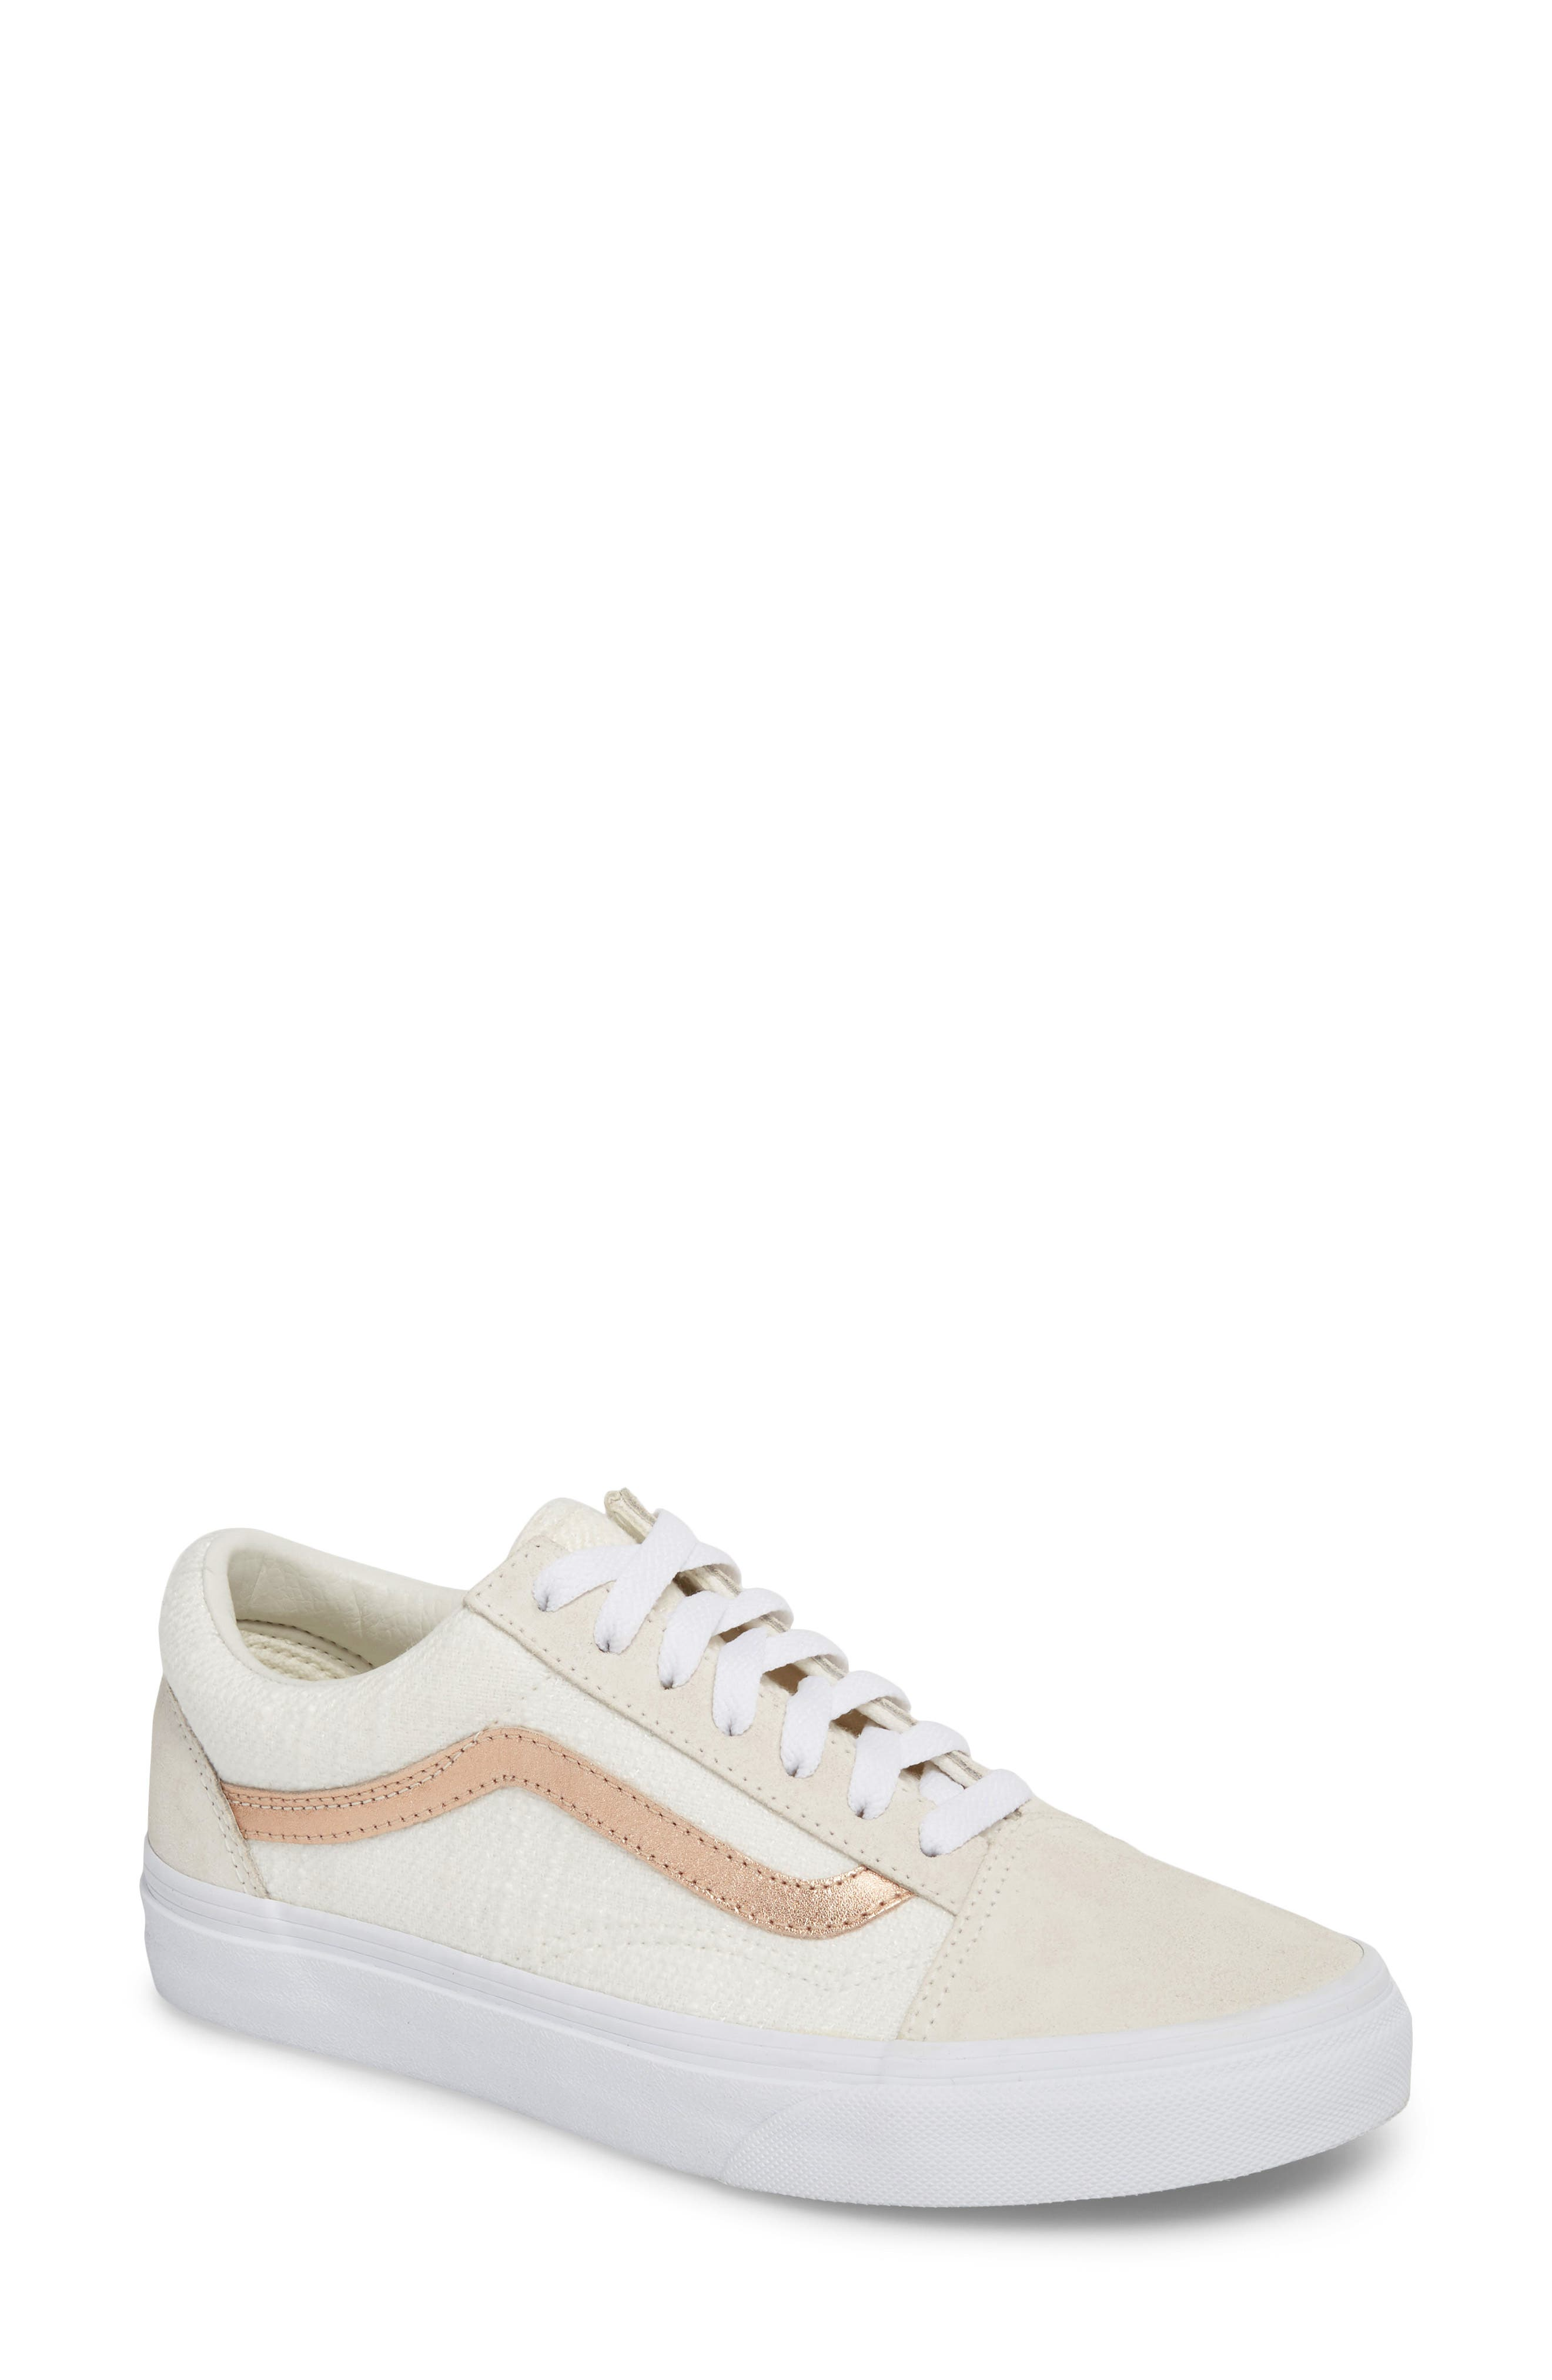 Old Skool Sneaker,                         Main,                         color, 900